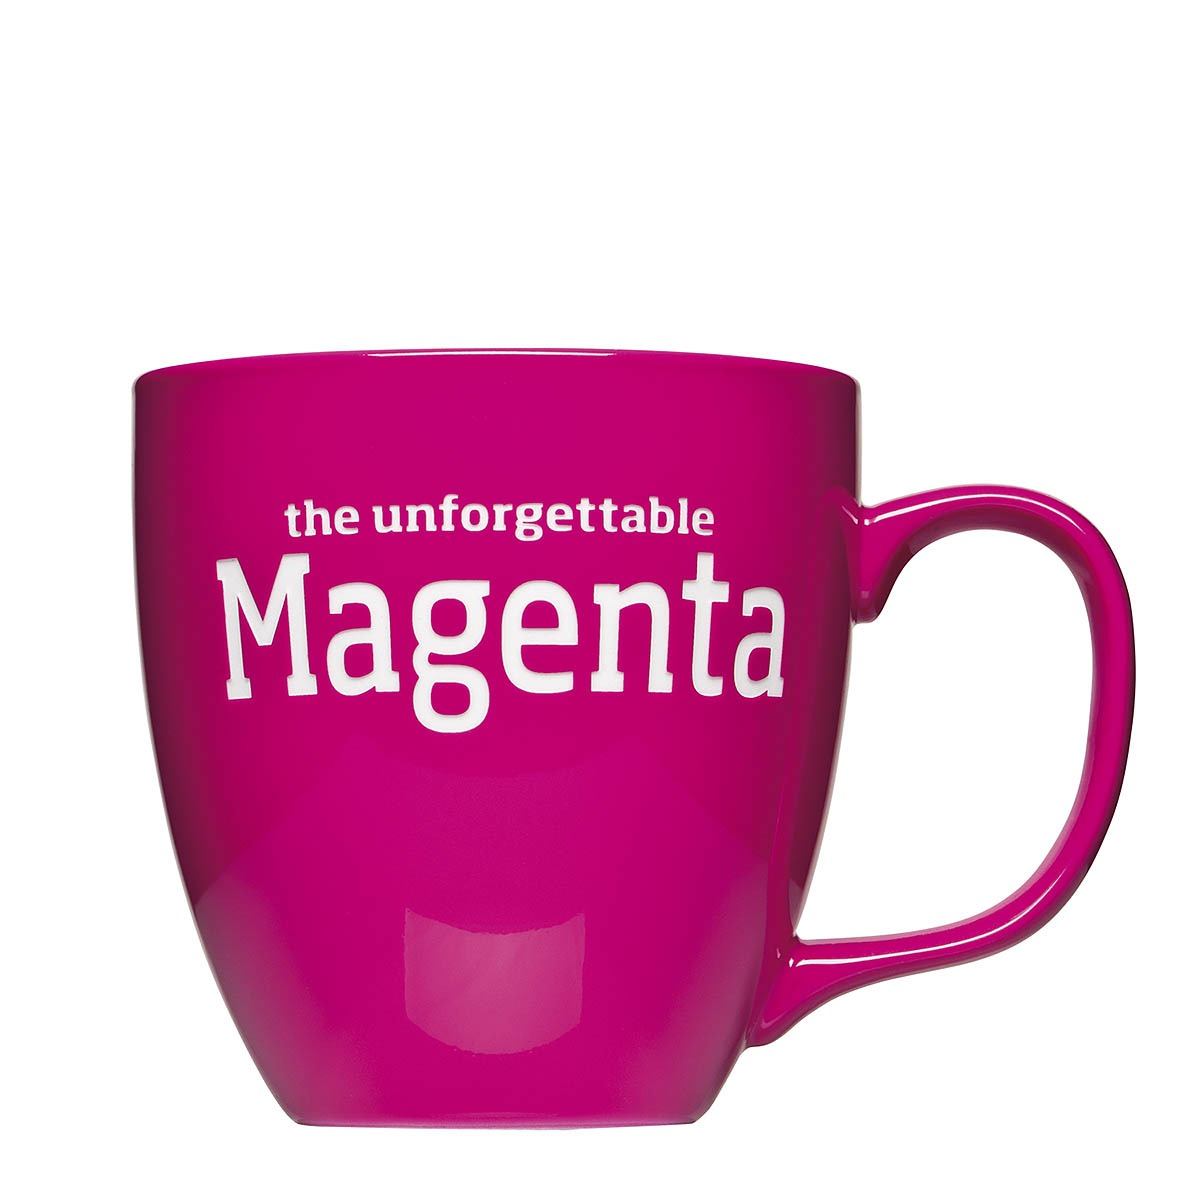 Printing jumbo cups with Pantone colors - promotional cups from Mahlwerck Porzellan